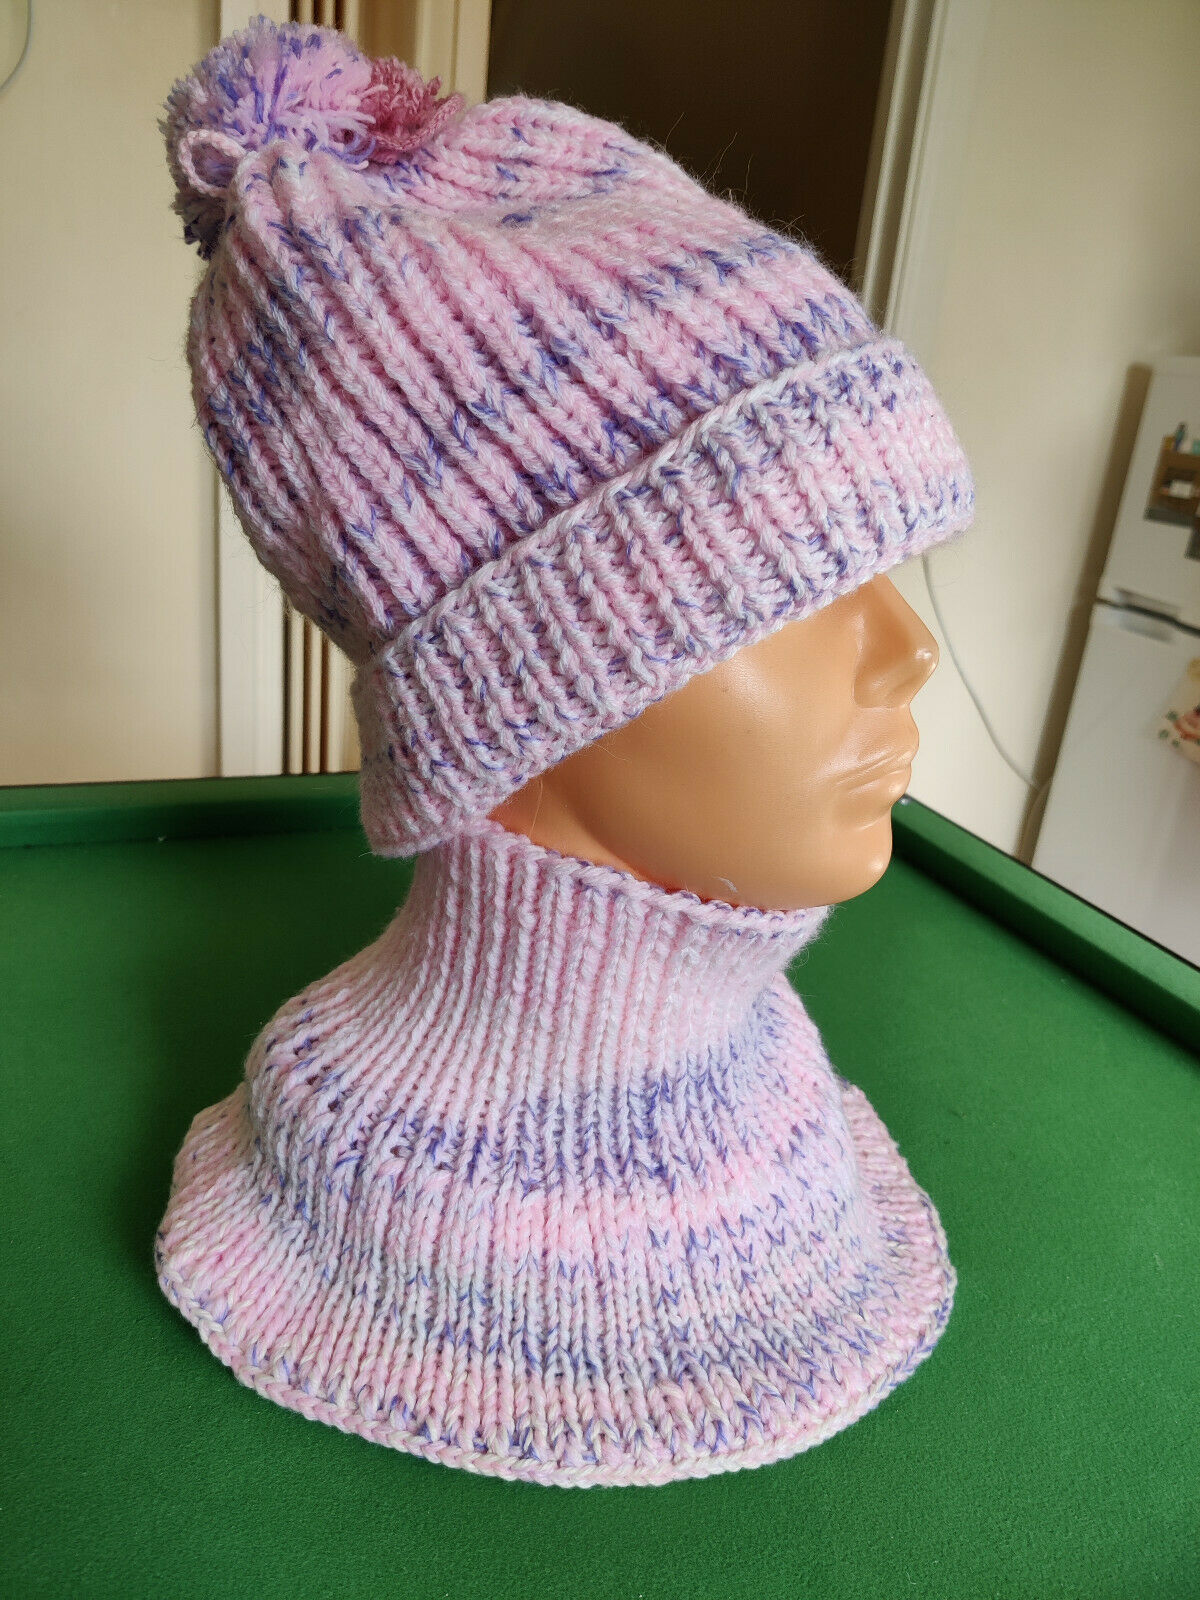 Handmade Knitted Beanie hat & Snood/ Scarf set Adult size Pink Lilac Pom Pom New